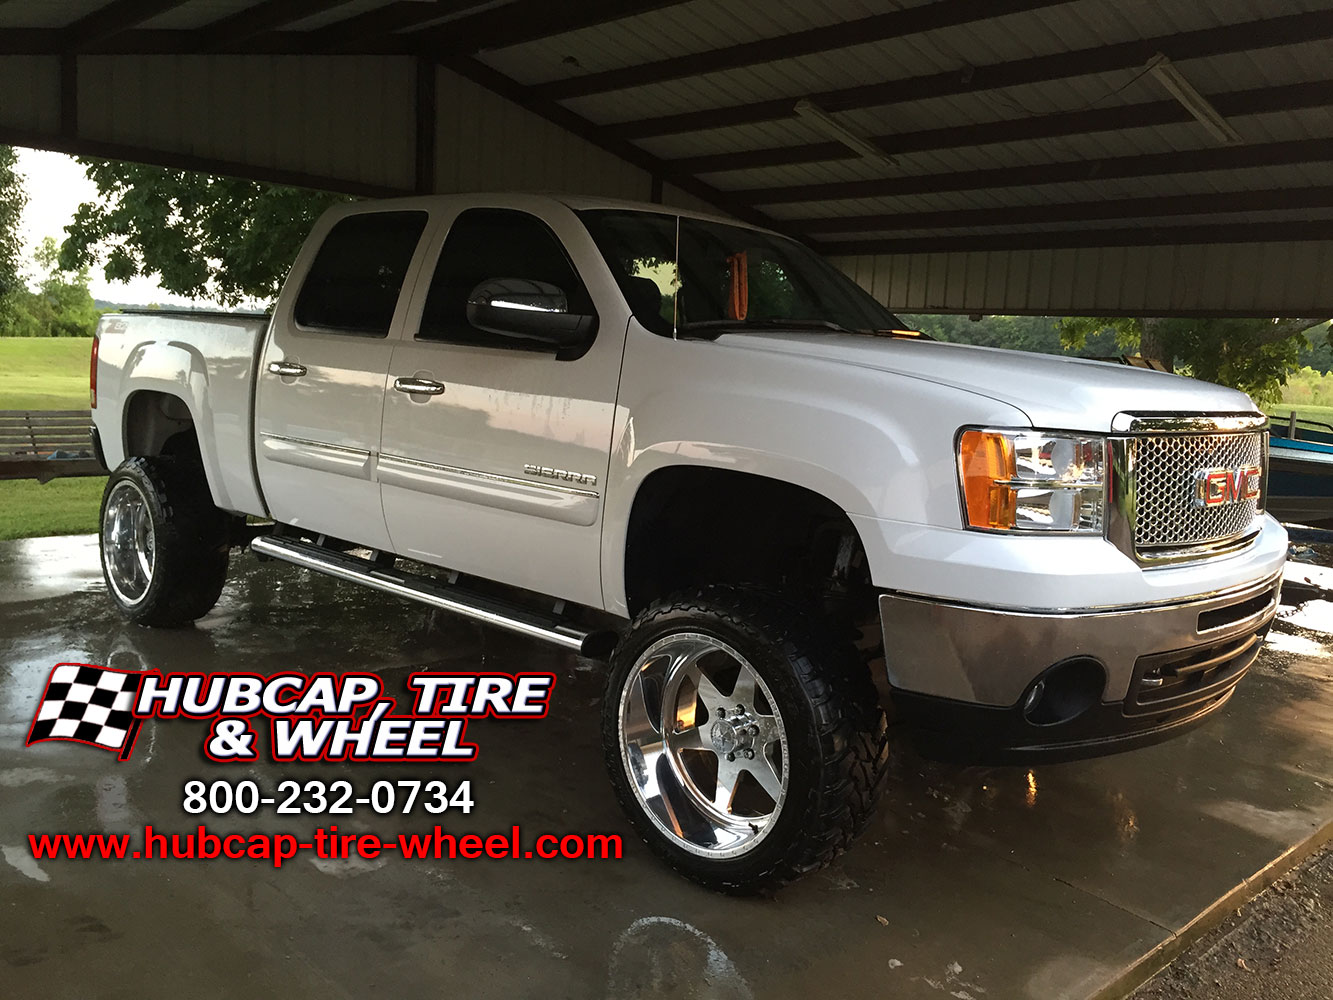 2012 GMC Sierra American Force 22x12 Independence SS6 wheels